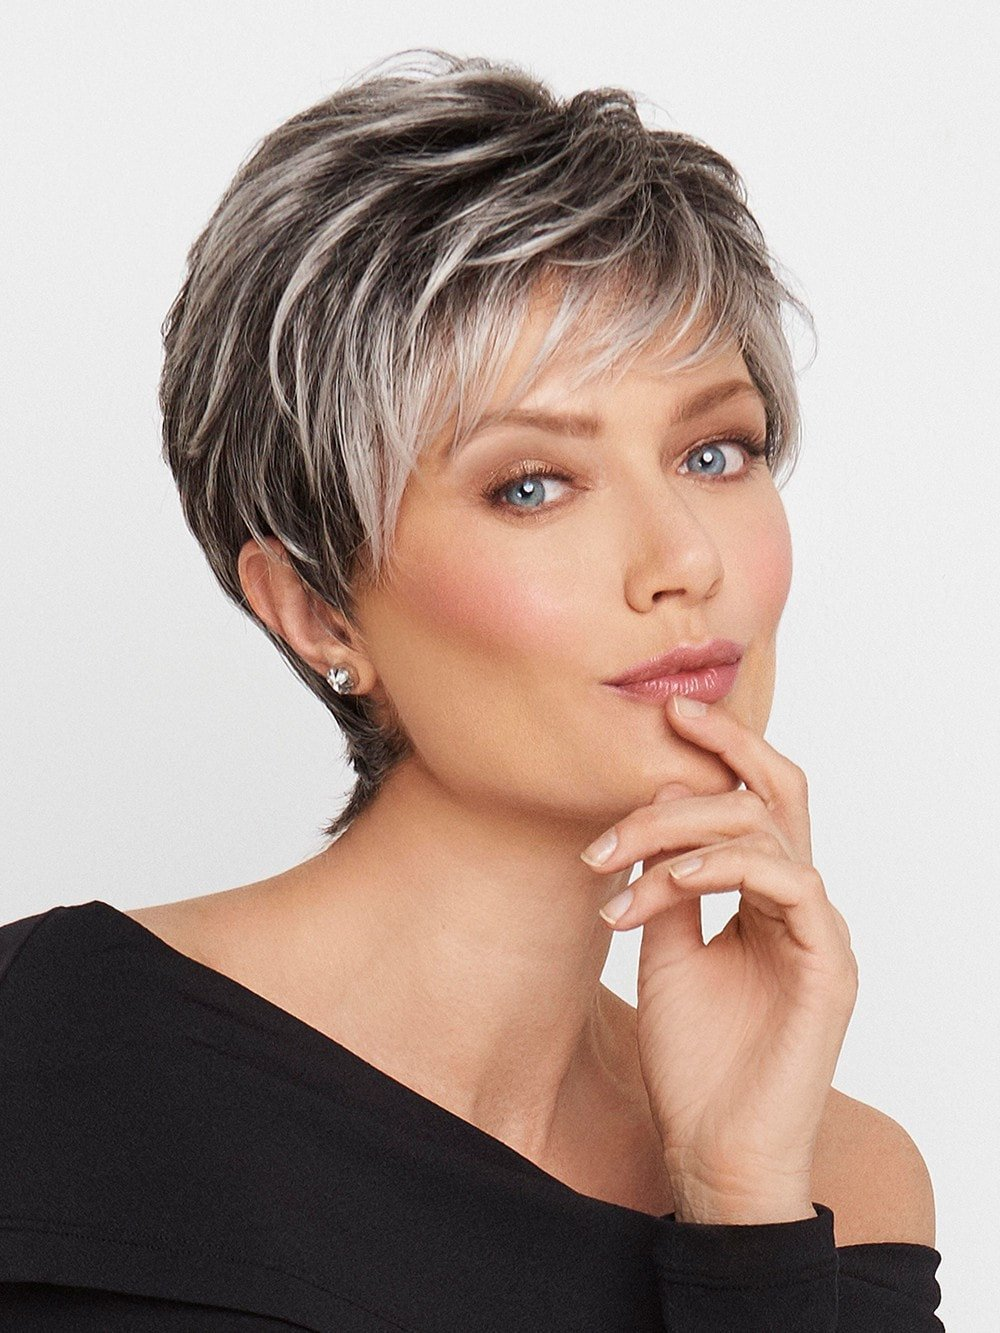 30 Superb Short Hairstyles For Women Over 40 Stylendesigns